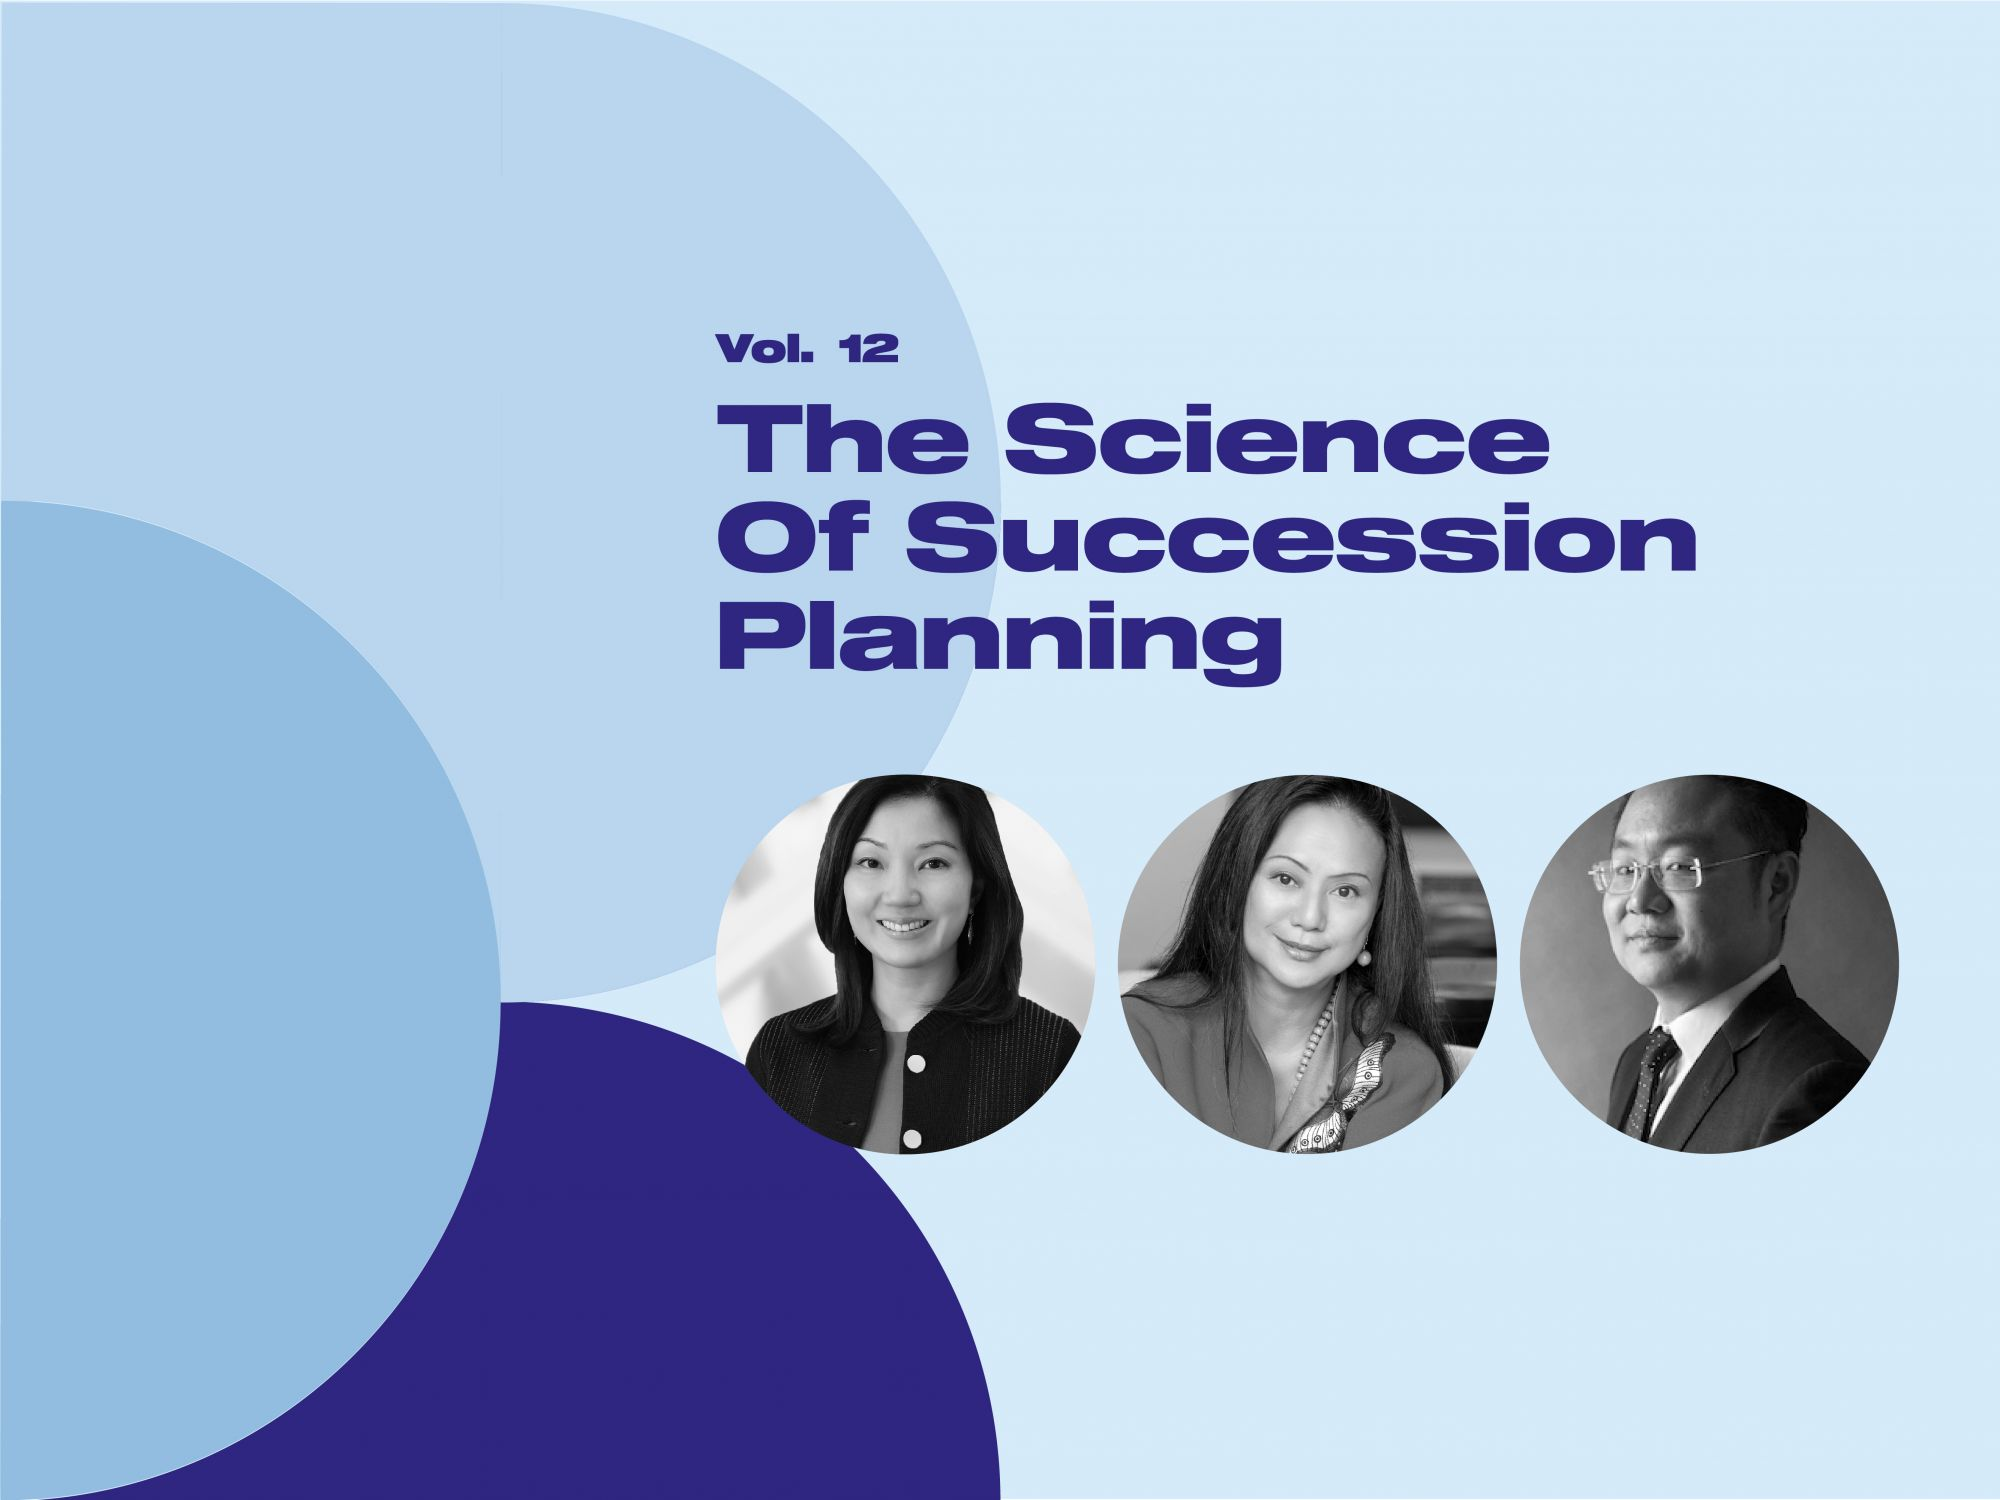 Cloud Talk: The Science Of Succession Planning